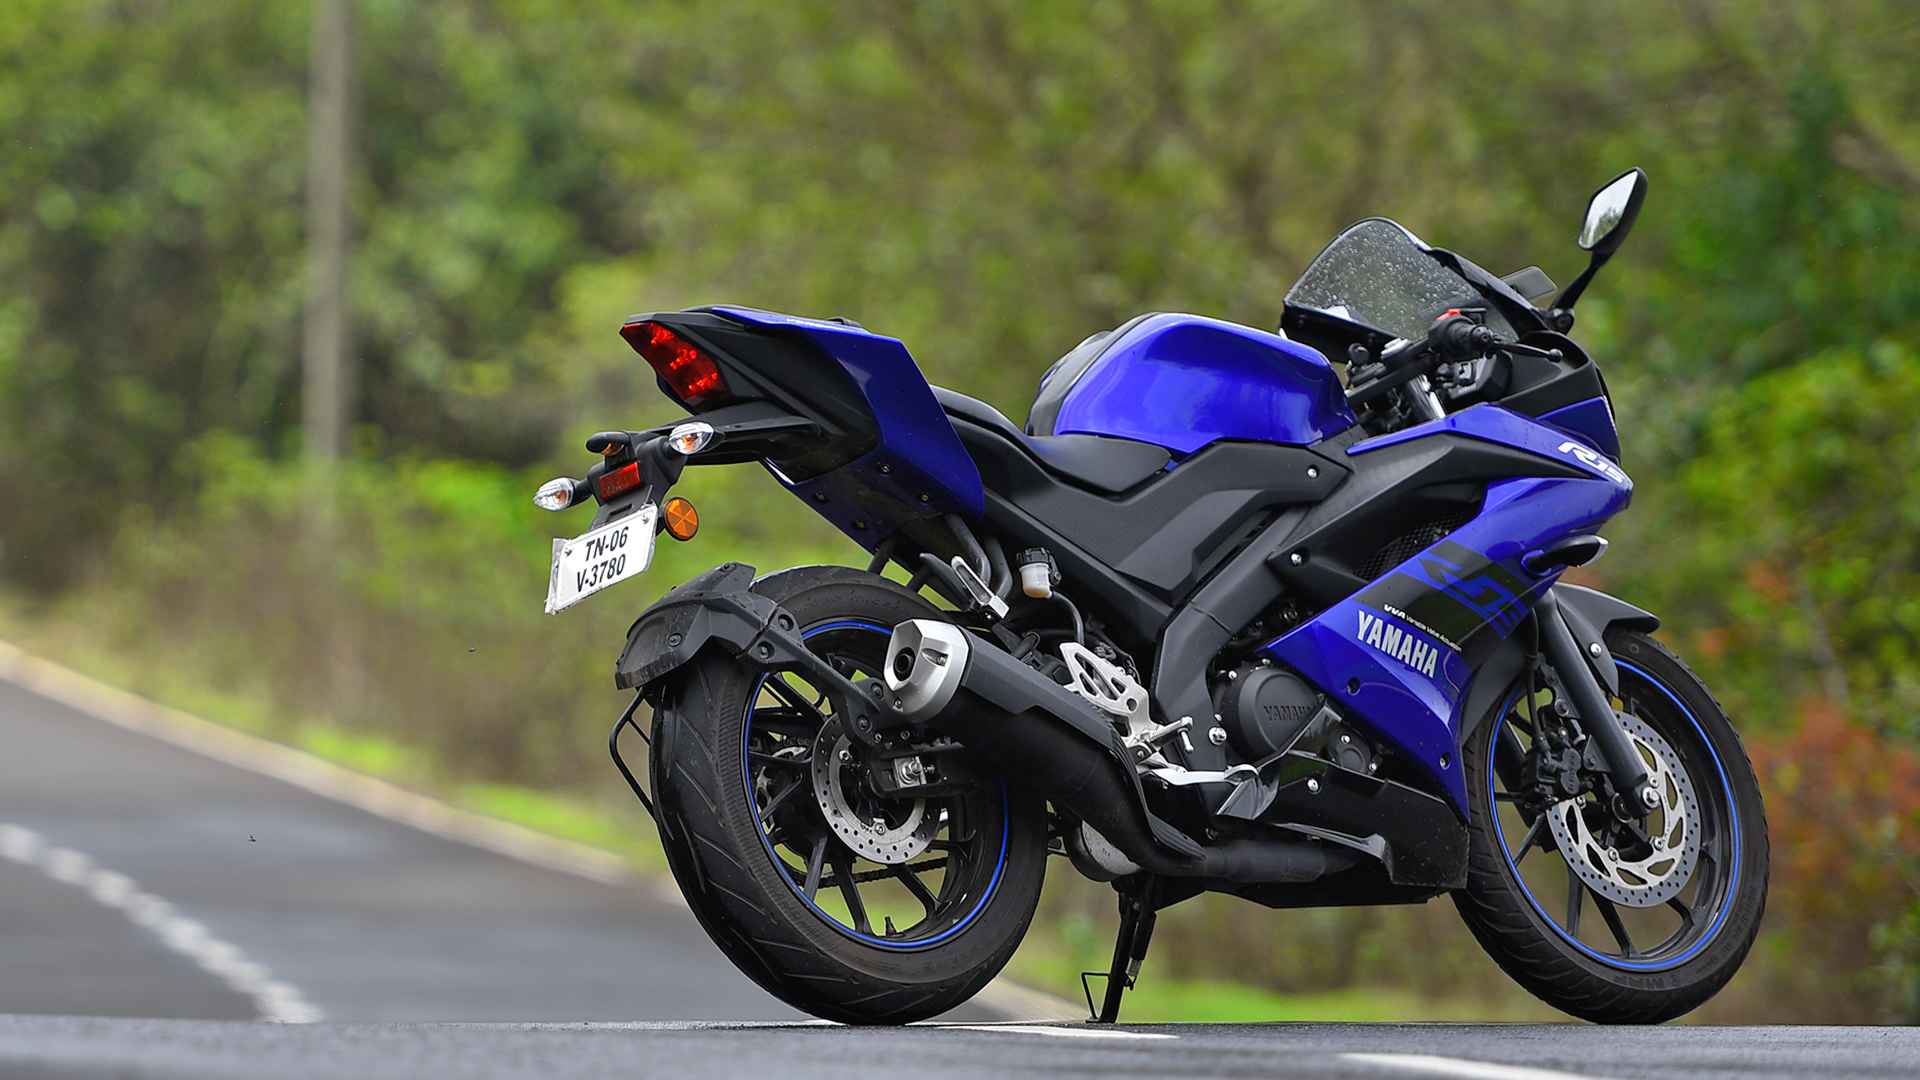 Yamaha Yzf R15 V30 2018 Price Mileage Reviews Specification